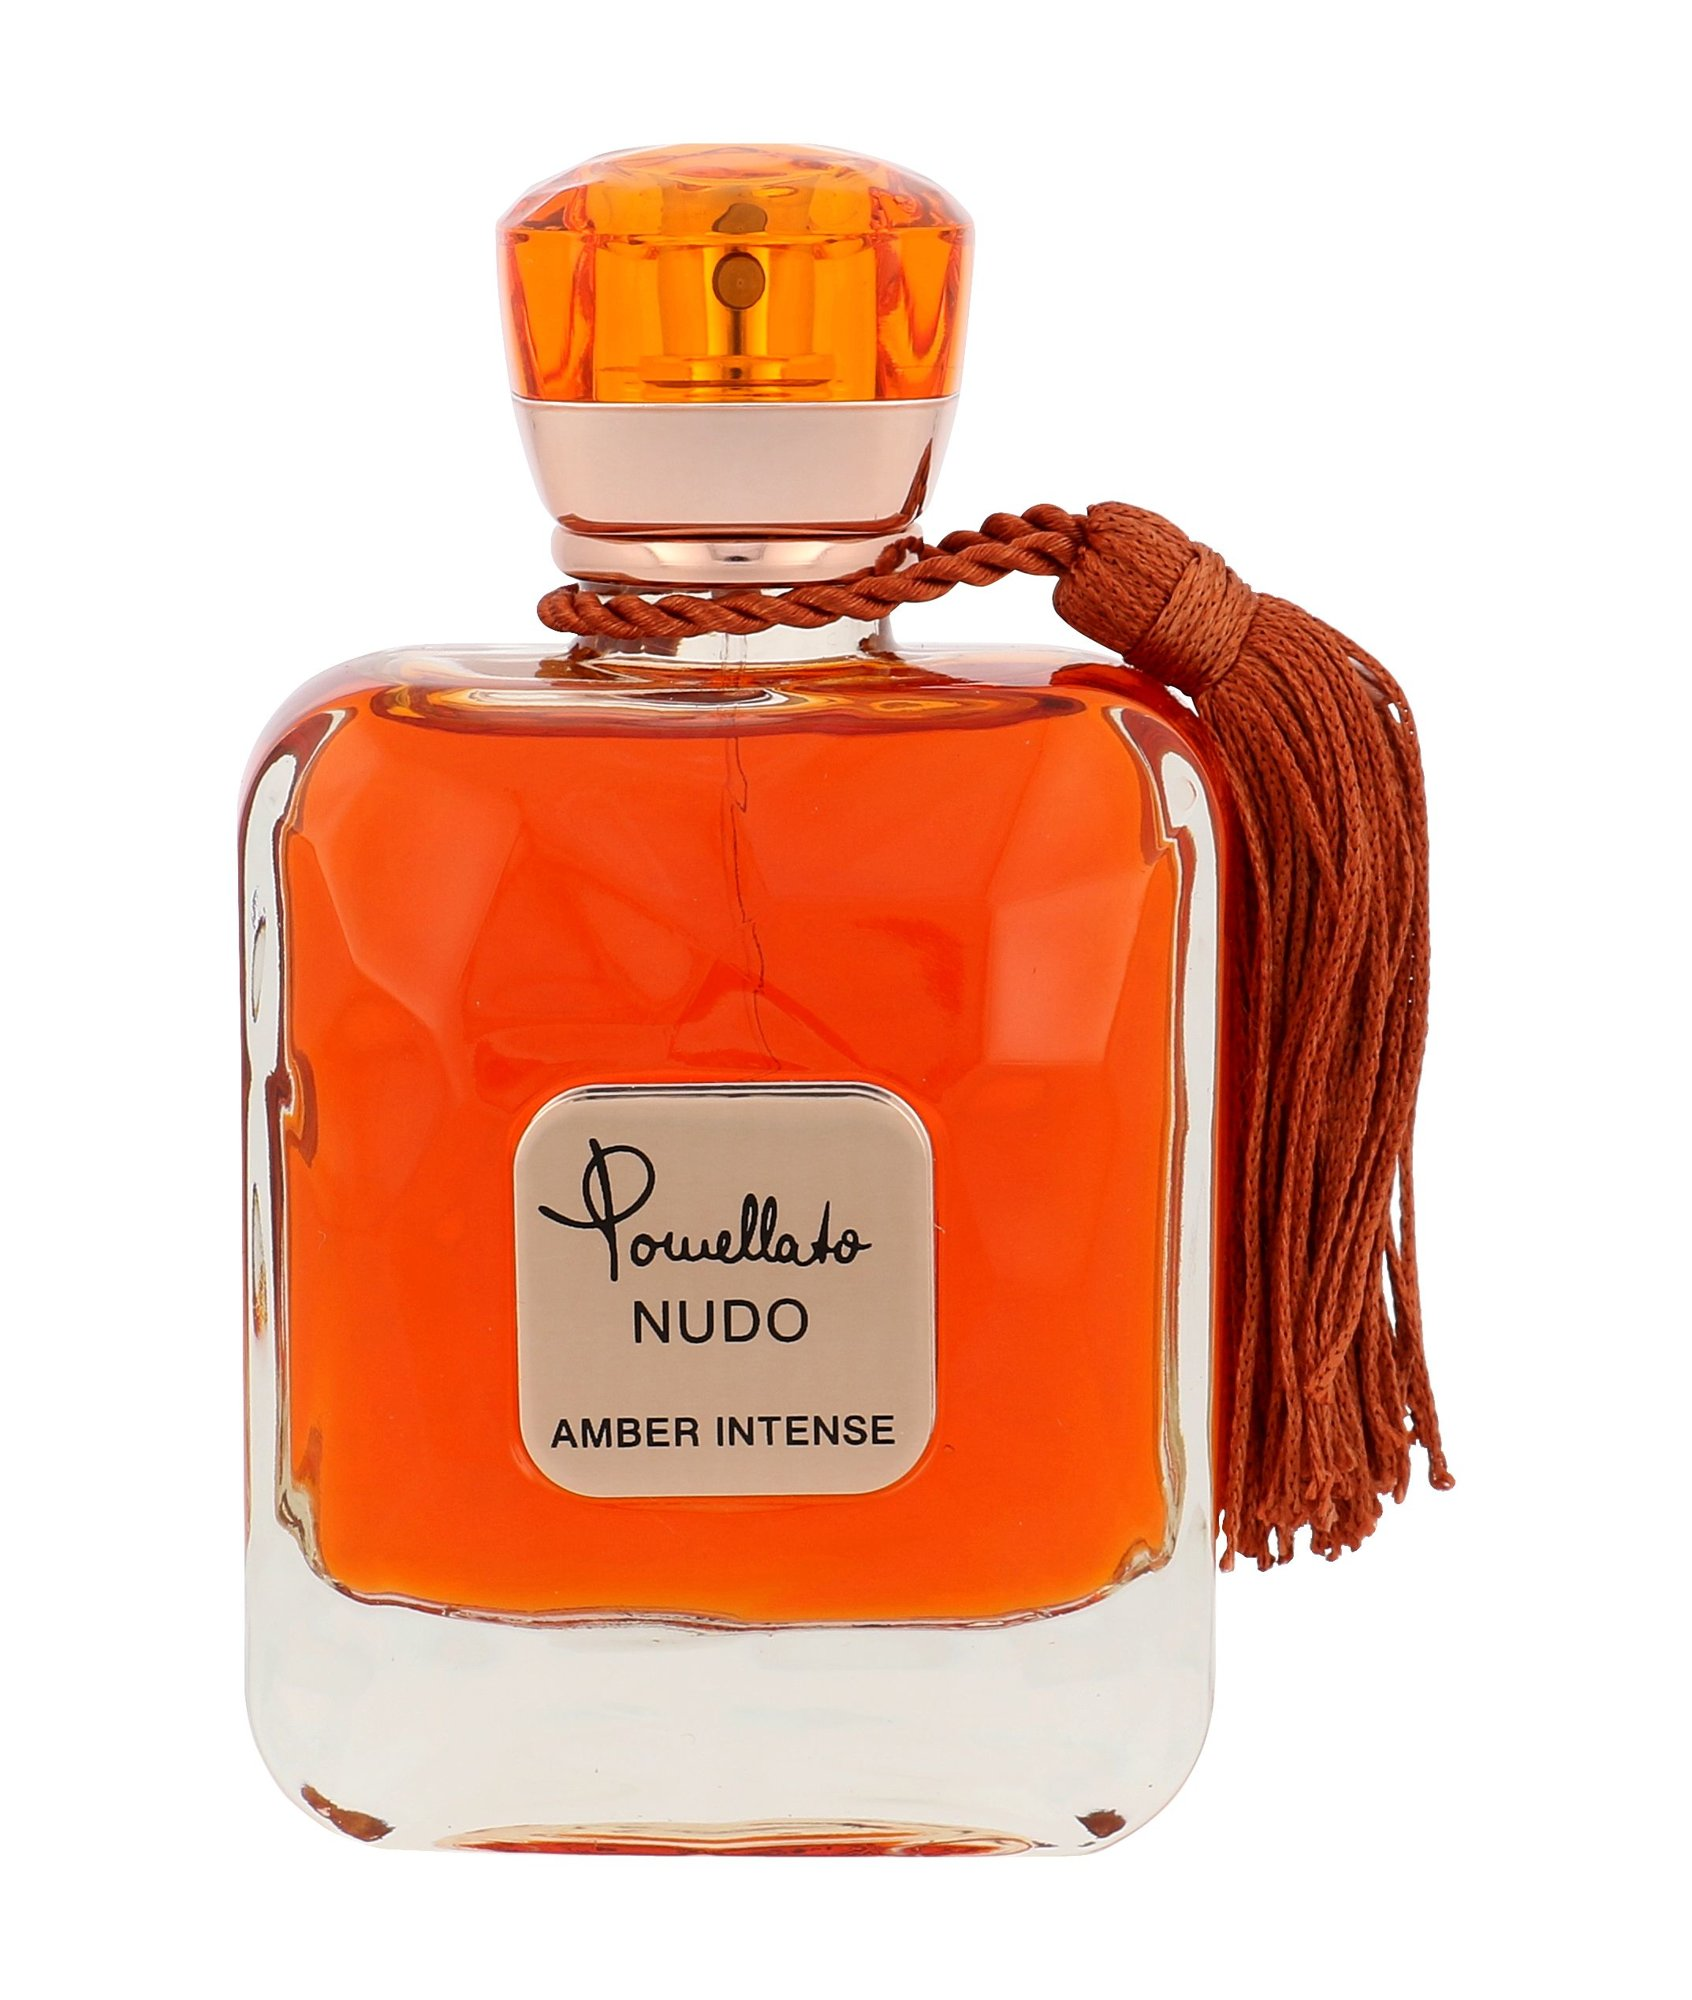 Pomellato Nudo Amber Intense EDP 90ml